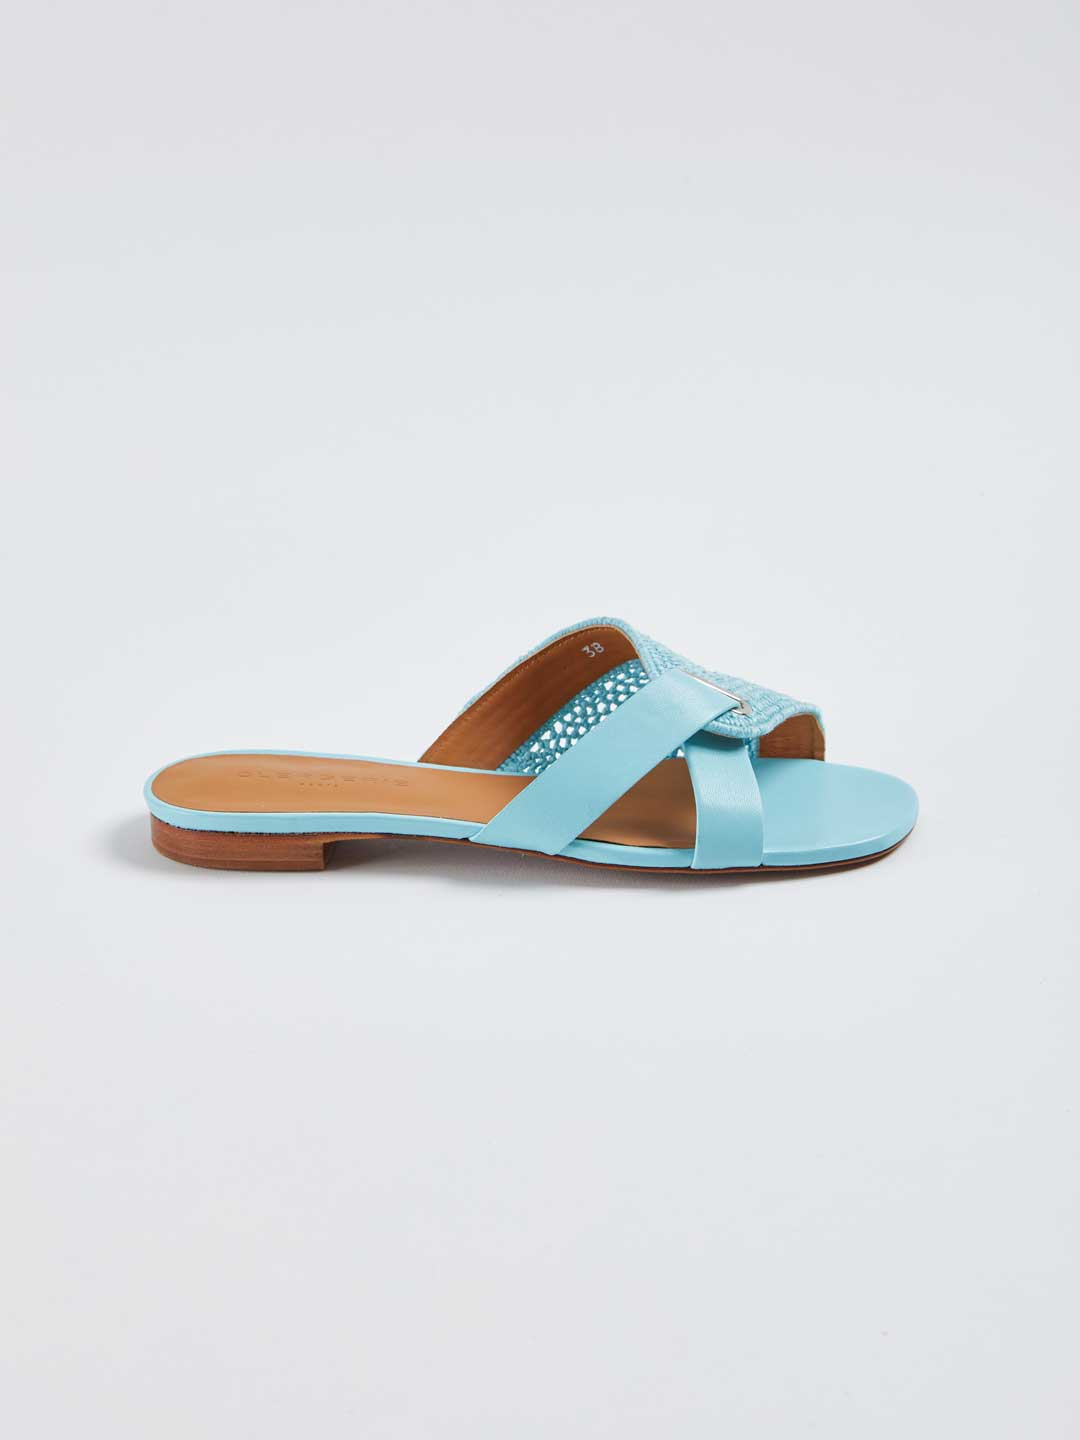 IOTA Leather Combi Flat Cotton Sandals - Light Blue